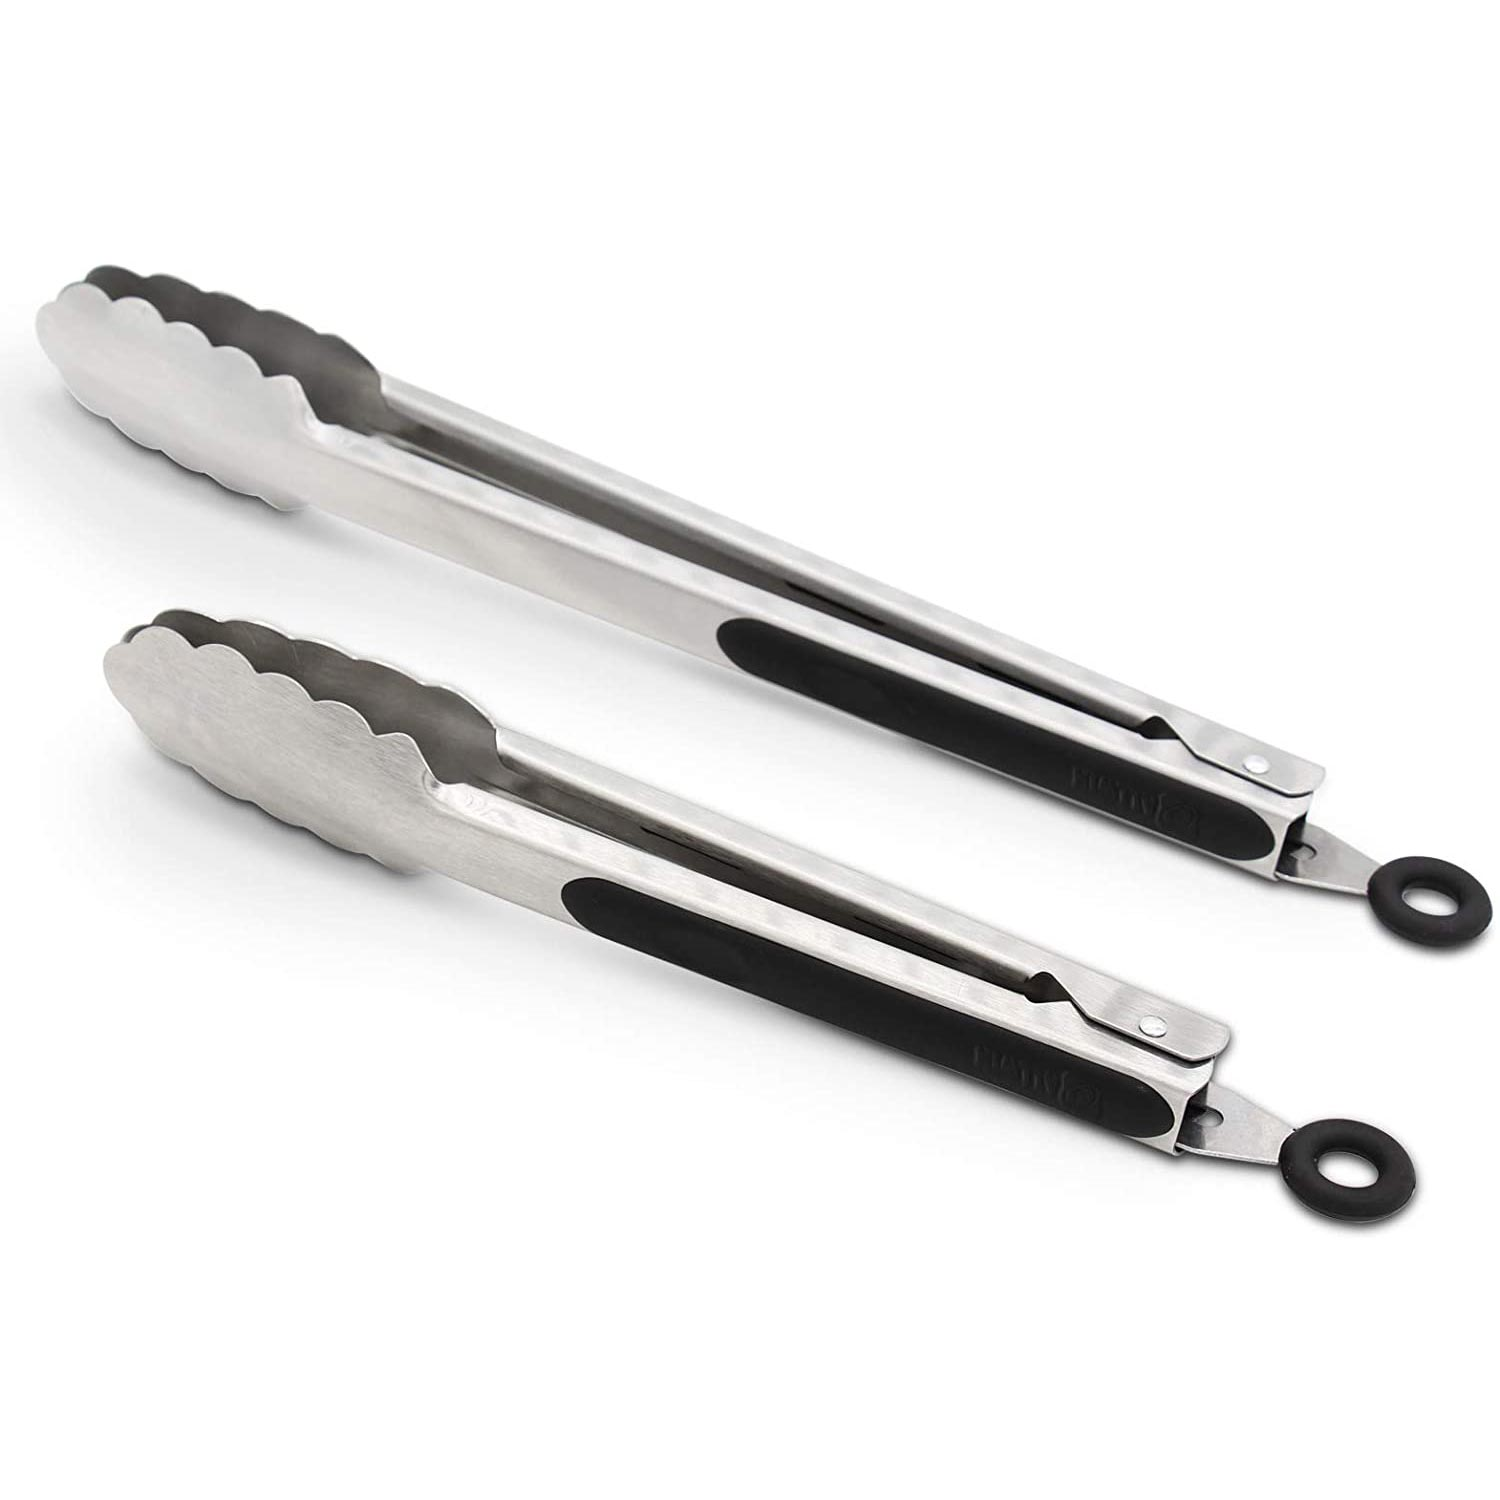 304 Stainless Steel Kitchen Cooking Tongs